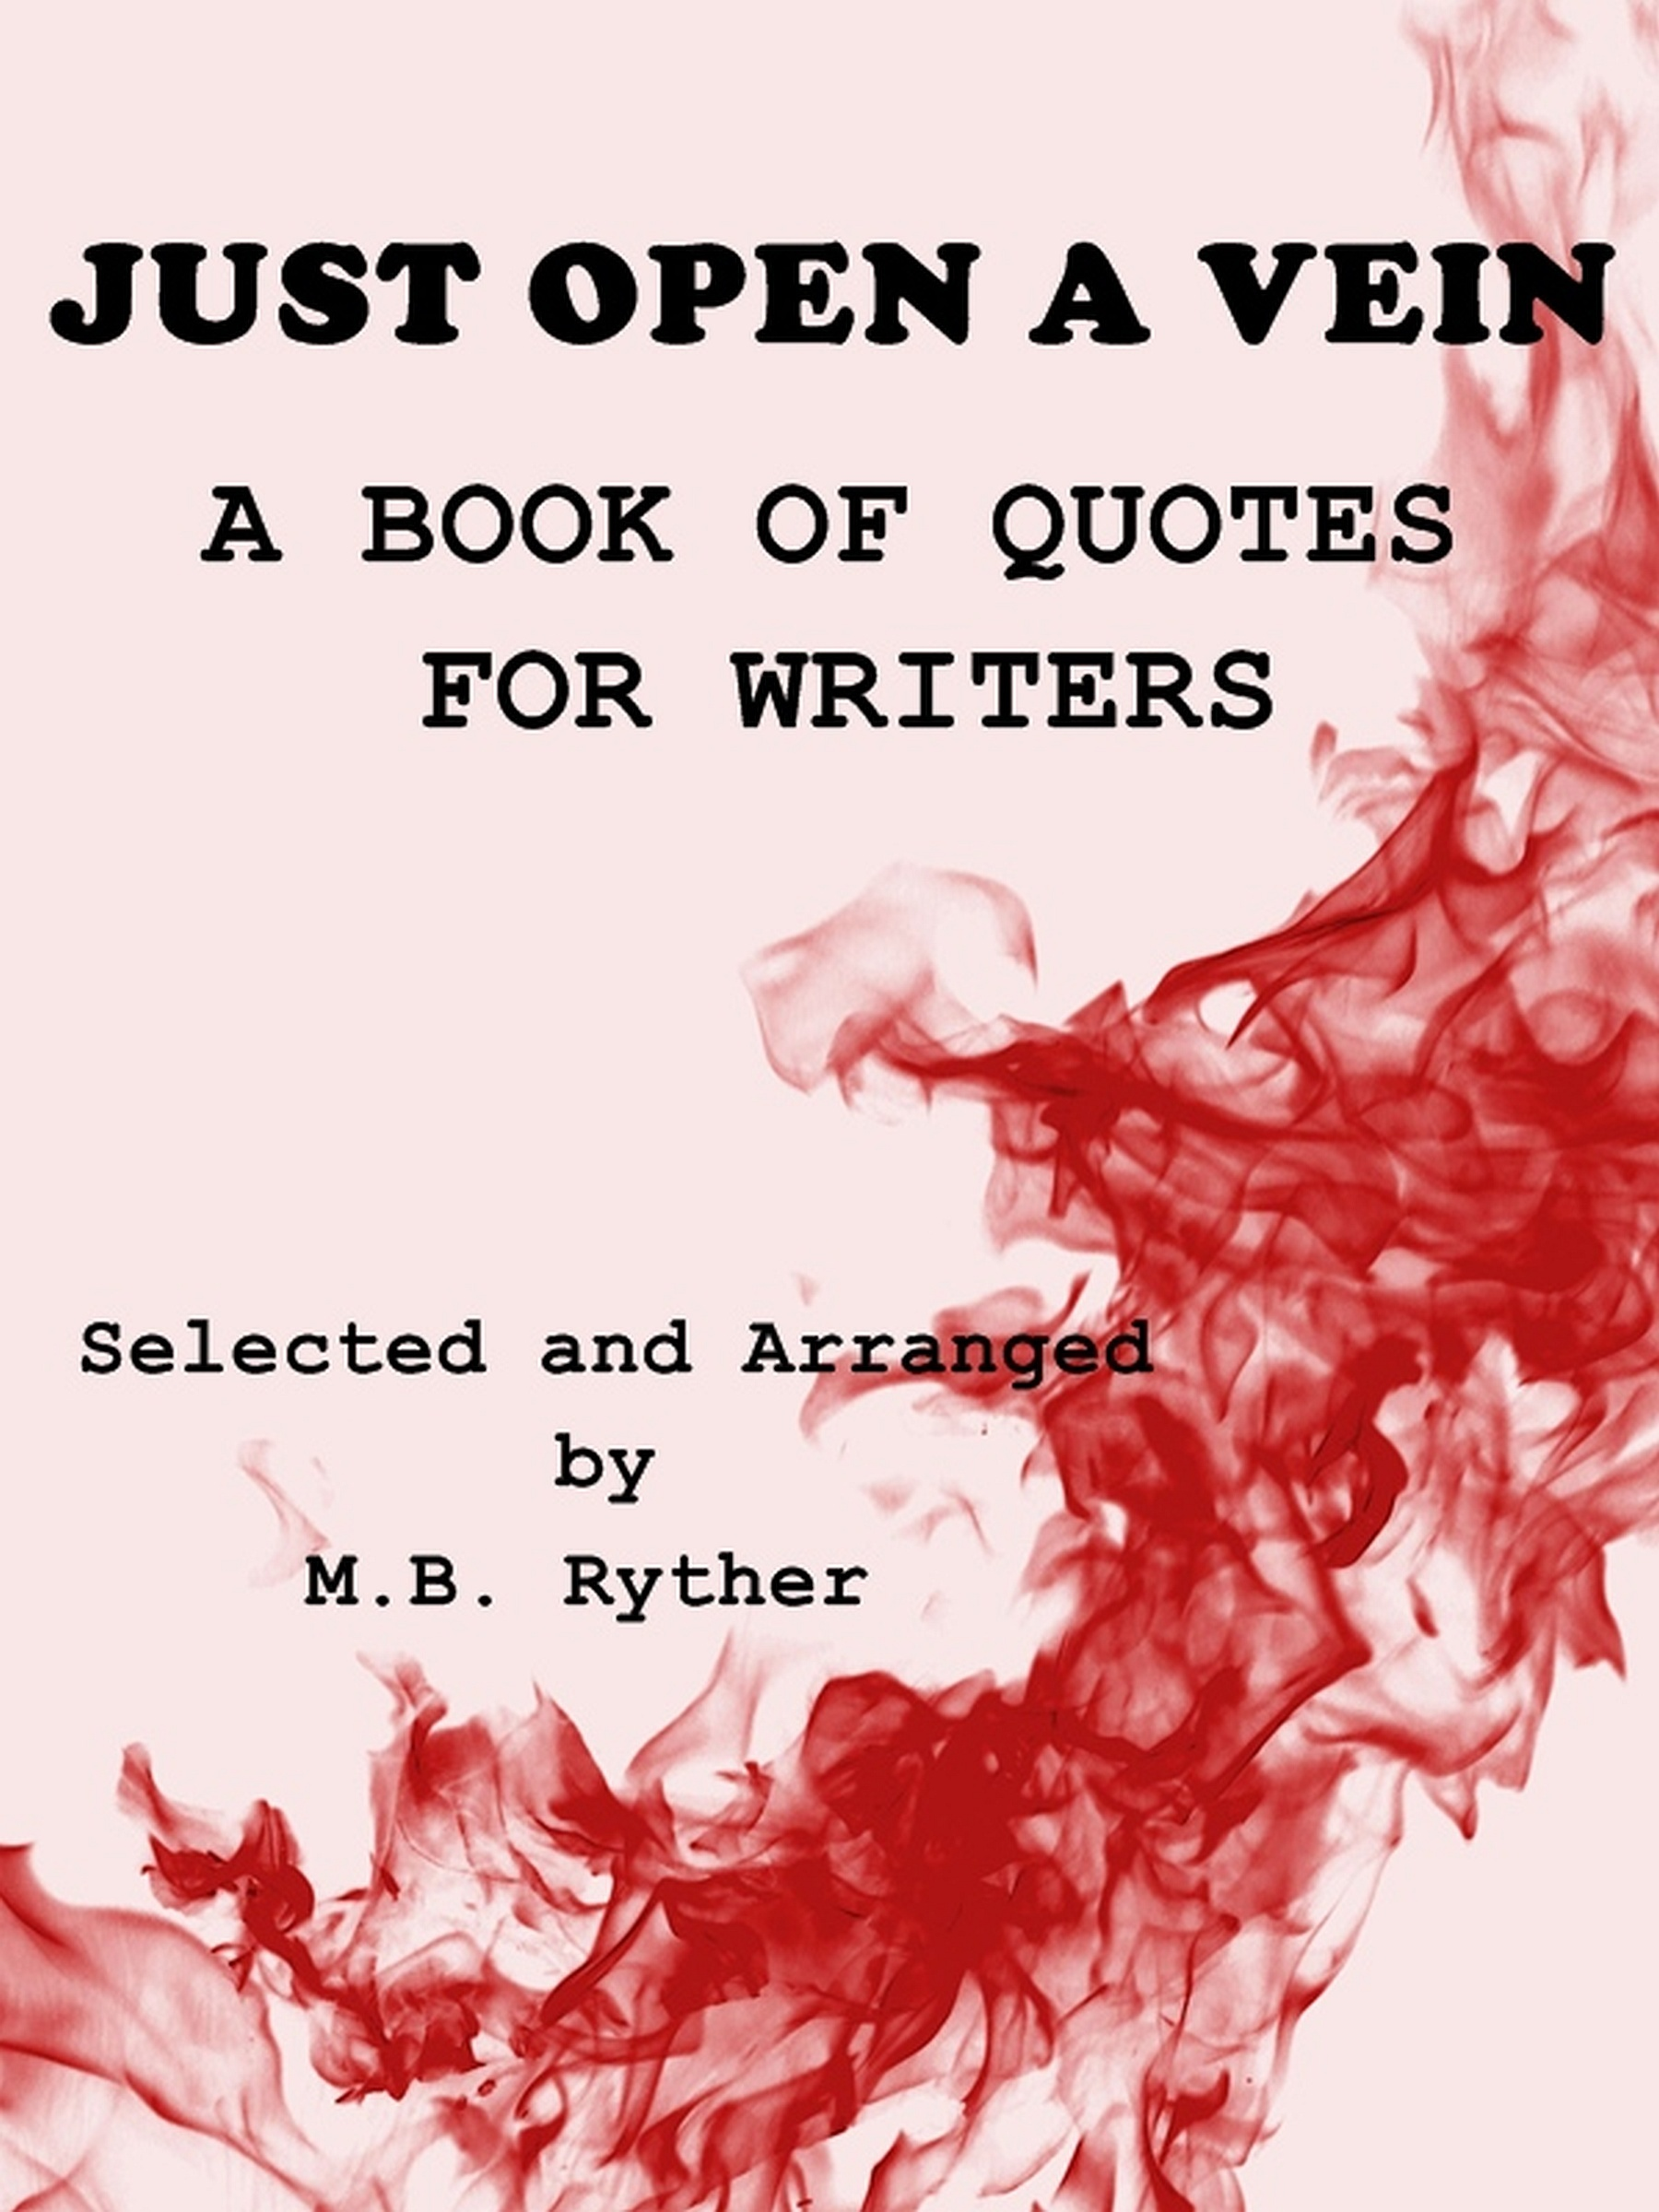 Just Open a Vein: A Book of Quotes for Writers